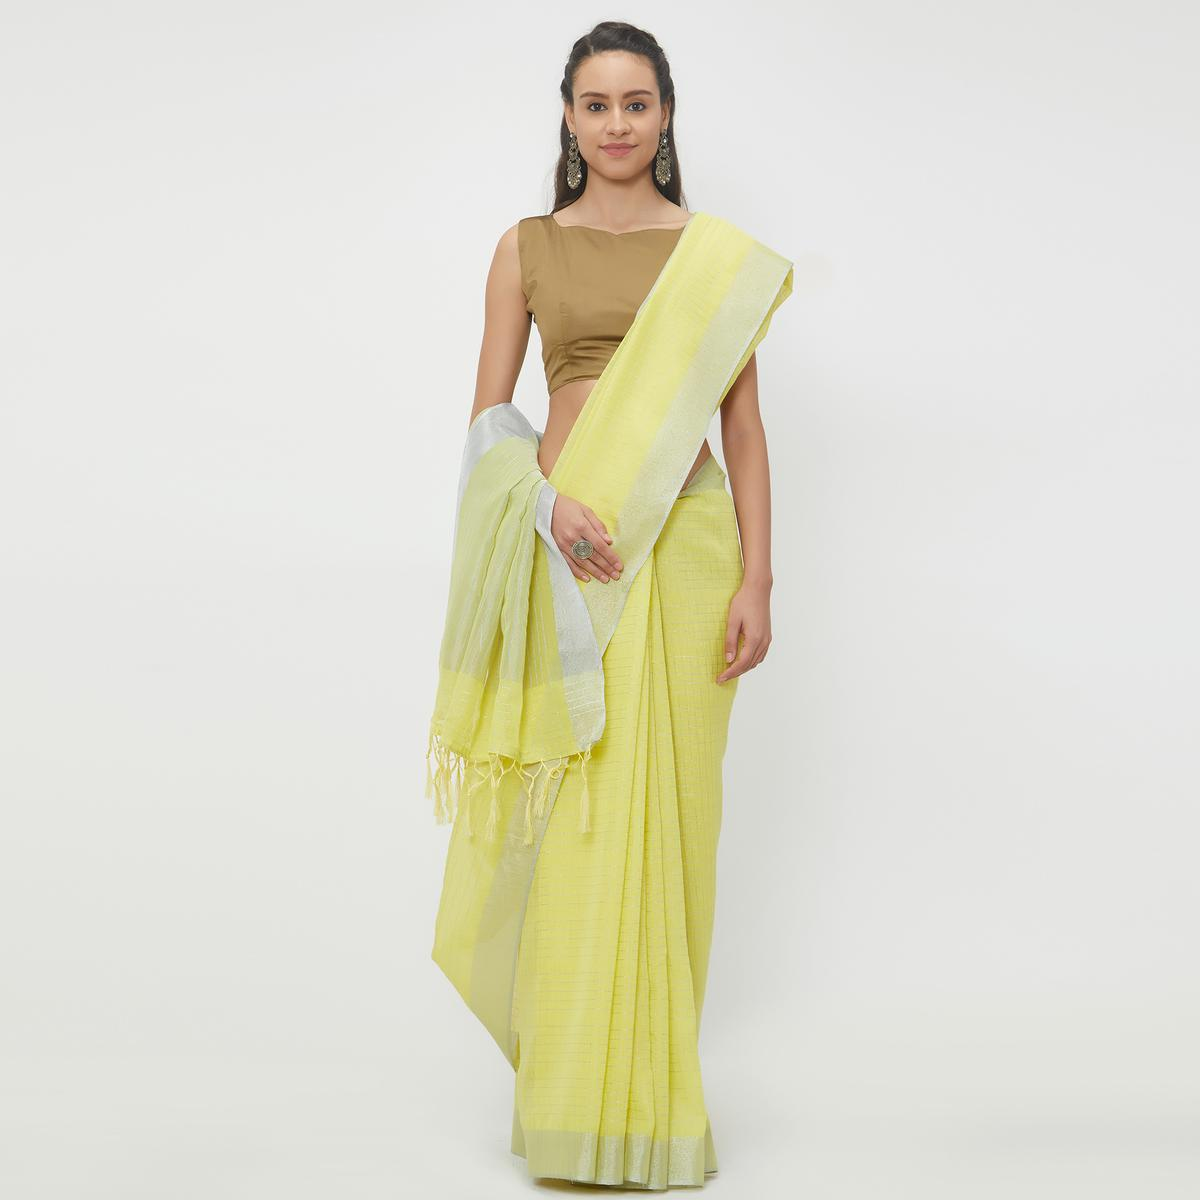 Energetic Lemon Yellow Colored Casual Wear Linen Saree With 2 Blouse Pieces